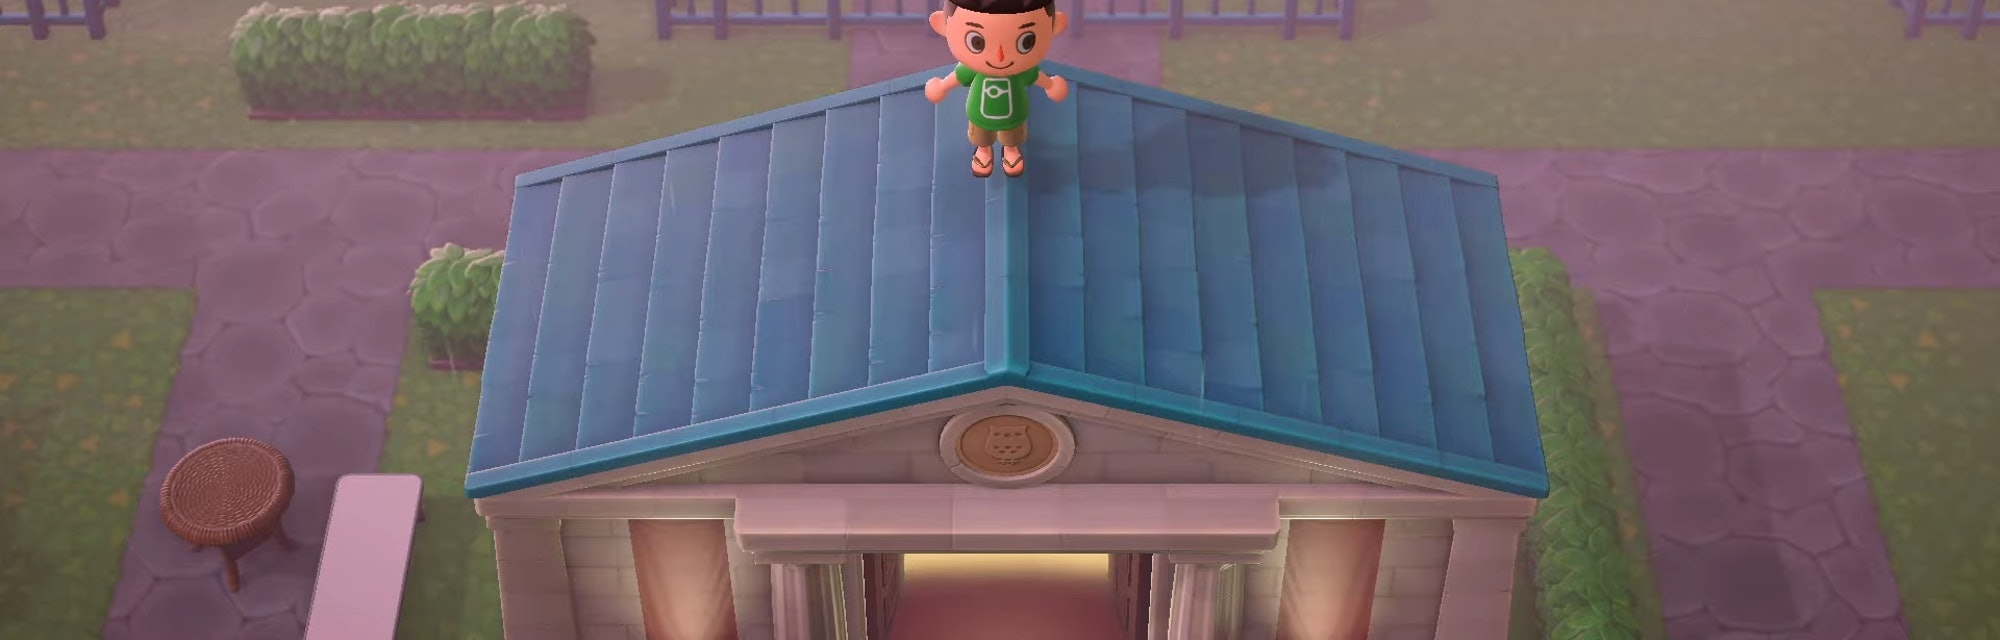 Glitches Stuff In Cs Go Halloween 2020 Animal Crossing' glitch: How to decorate roofs & high ground, walk